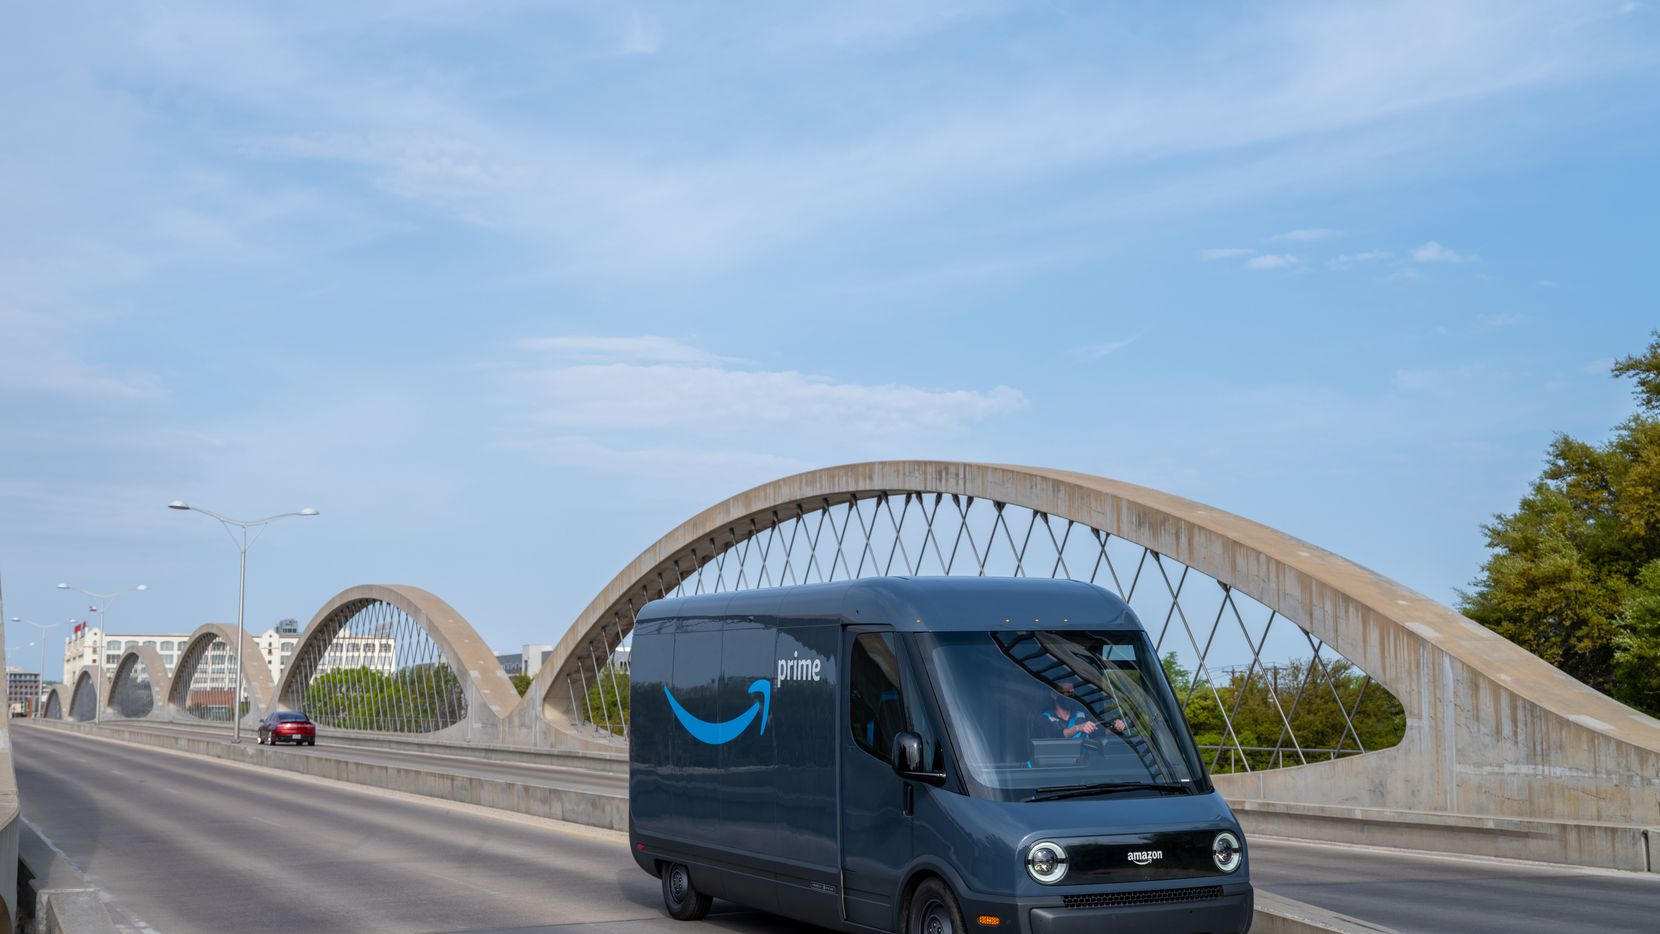 Designed and built in partnership with Rivian, Amazon s first custom electric delivery vehicle was unveiled last fall. Here it is on the Seventh Street bridge in Fort Worth.